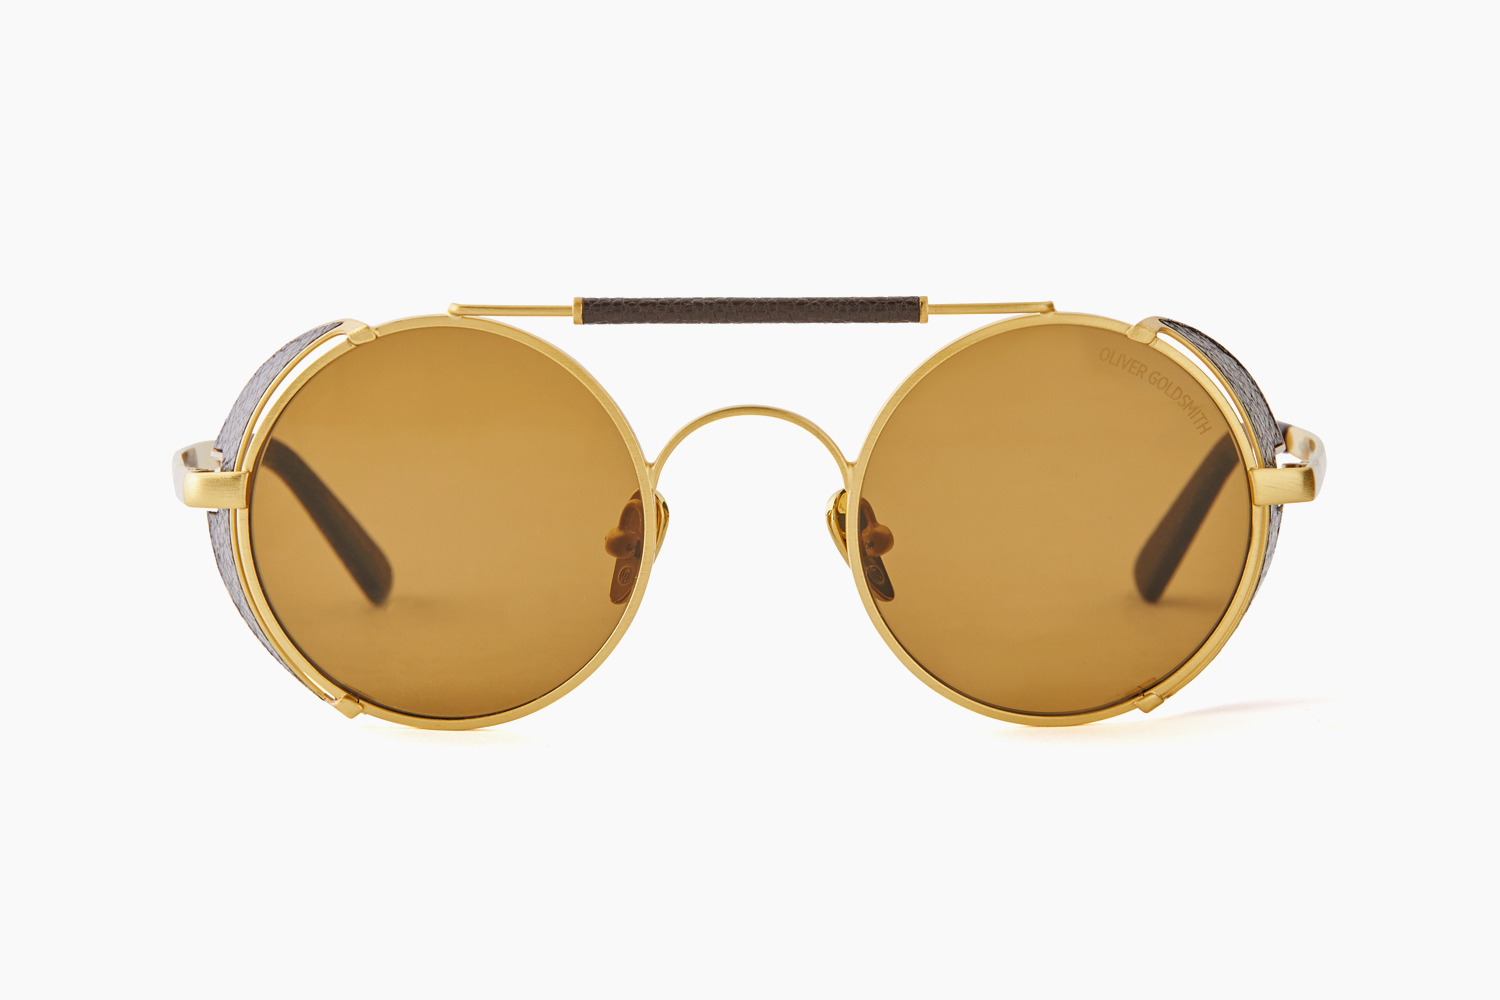 THE1920s – Brushed Gold|OLIVER GOLDSMITH